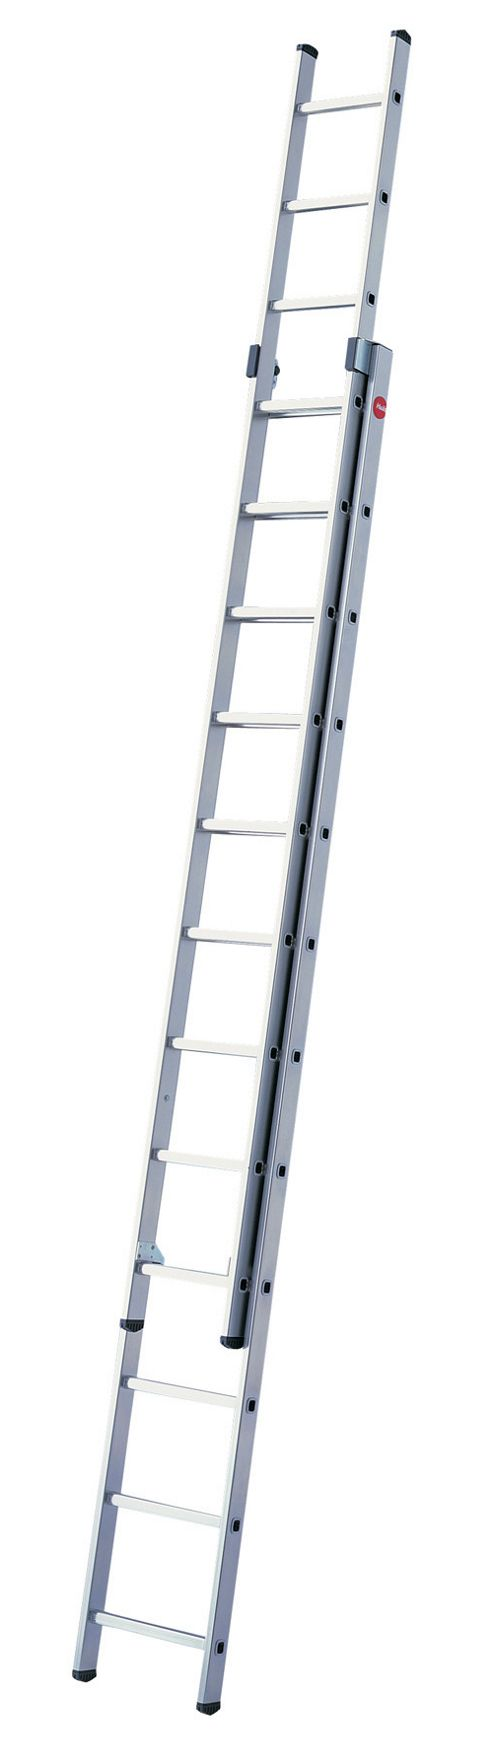 Hailo 681cm ProfiStep Duo 2-Section Aluminium Extension Ladder